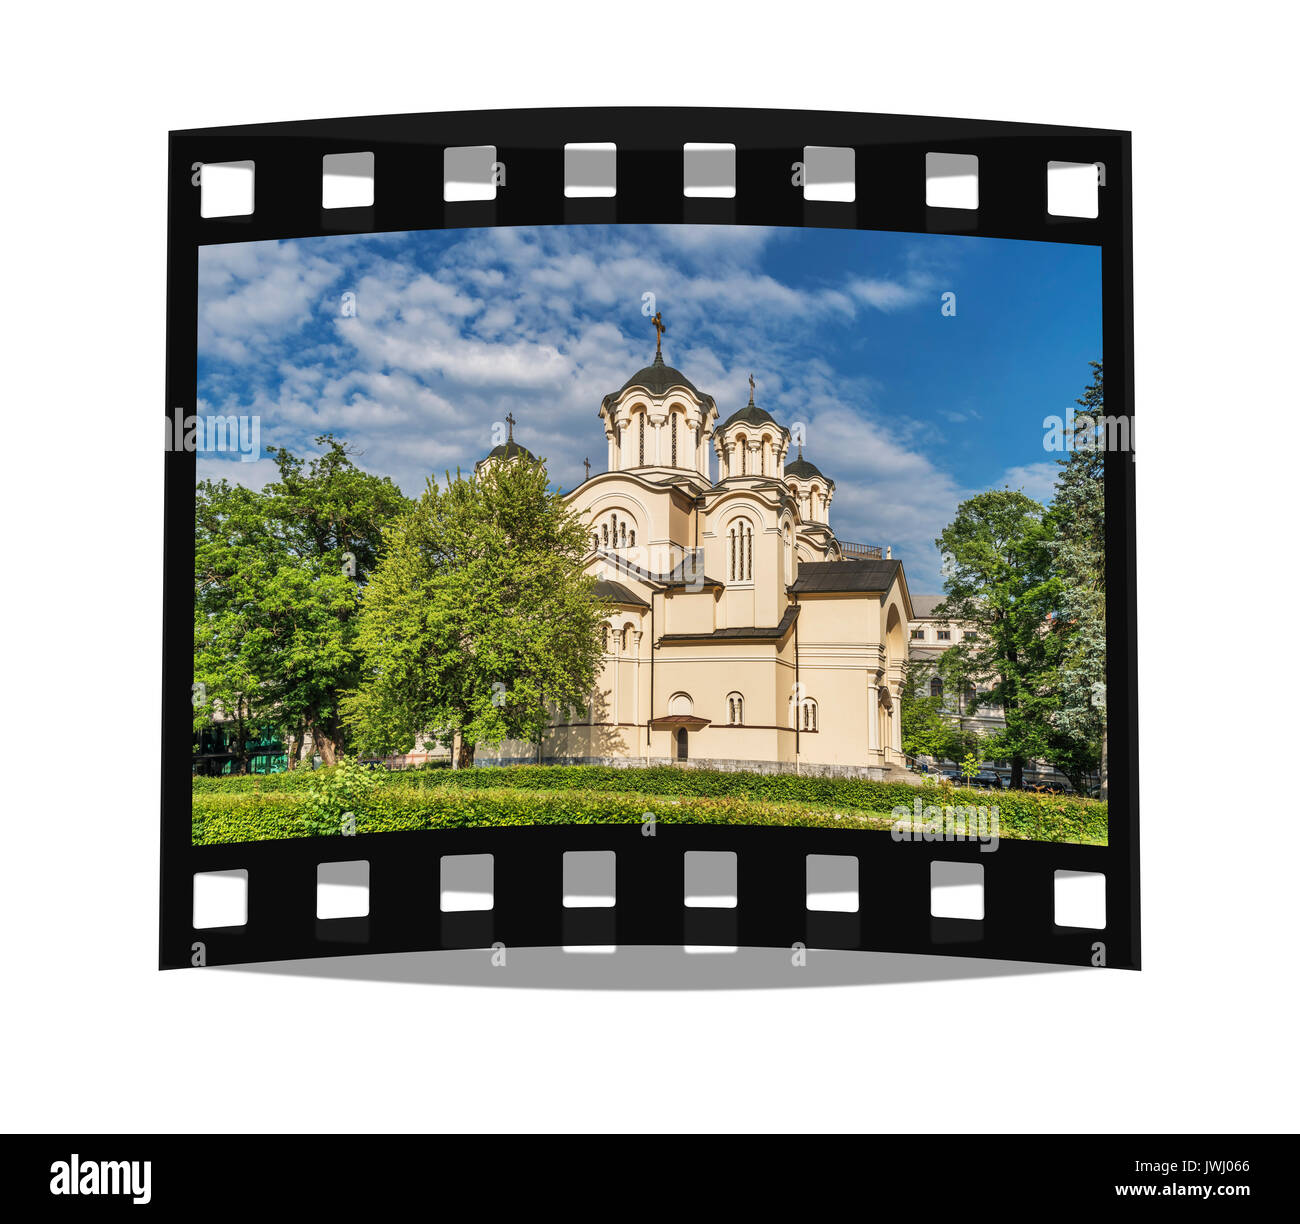 Sts. Cyril and Methodius church is the only Serbian Orthodox Church in Ljubljana, Slovenia, Europe - Stock Image